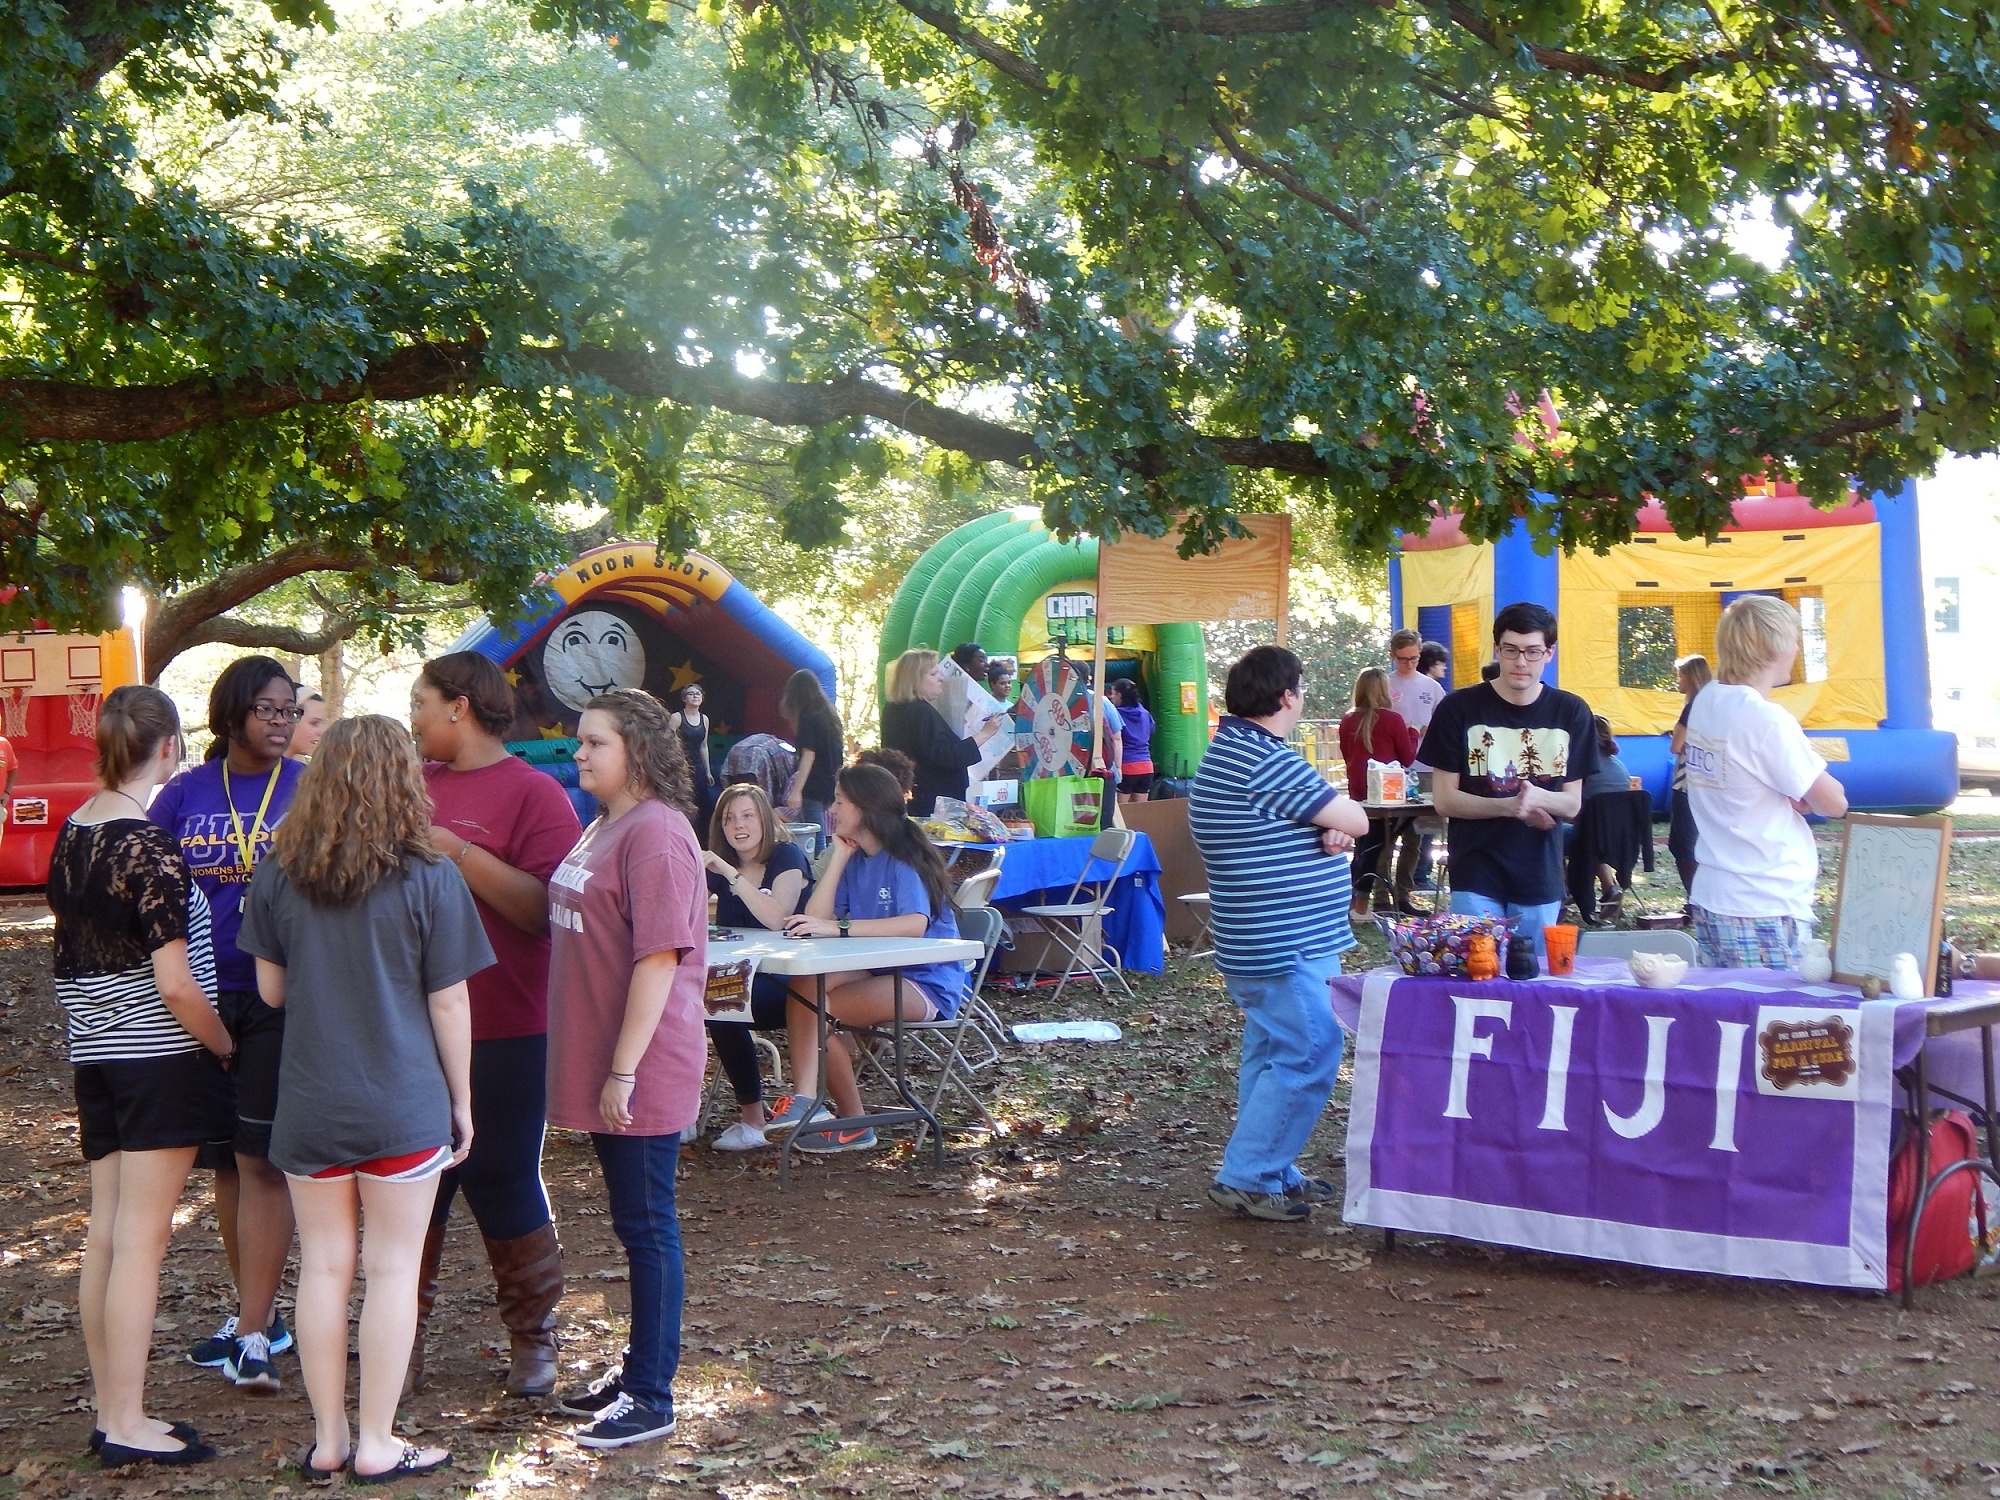 Carnival for a Cure brings fun and charity to campus